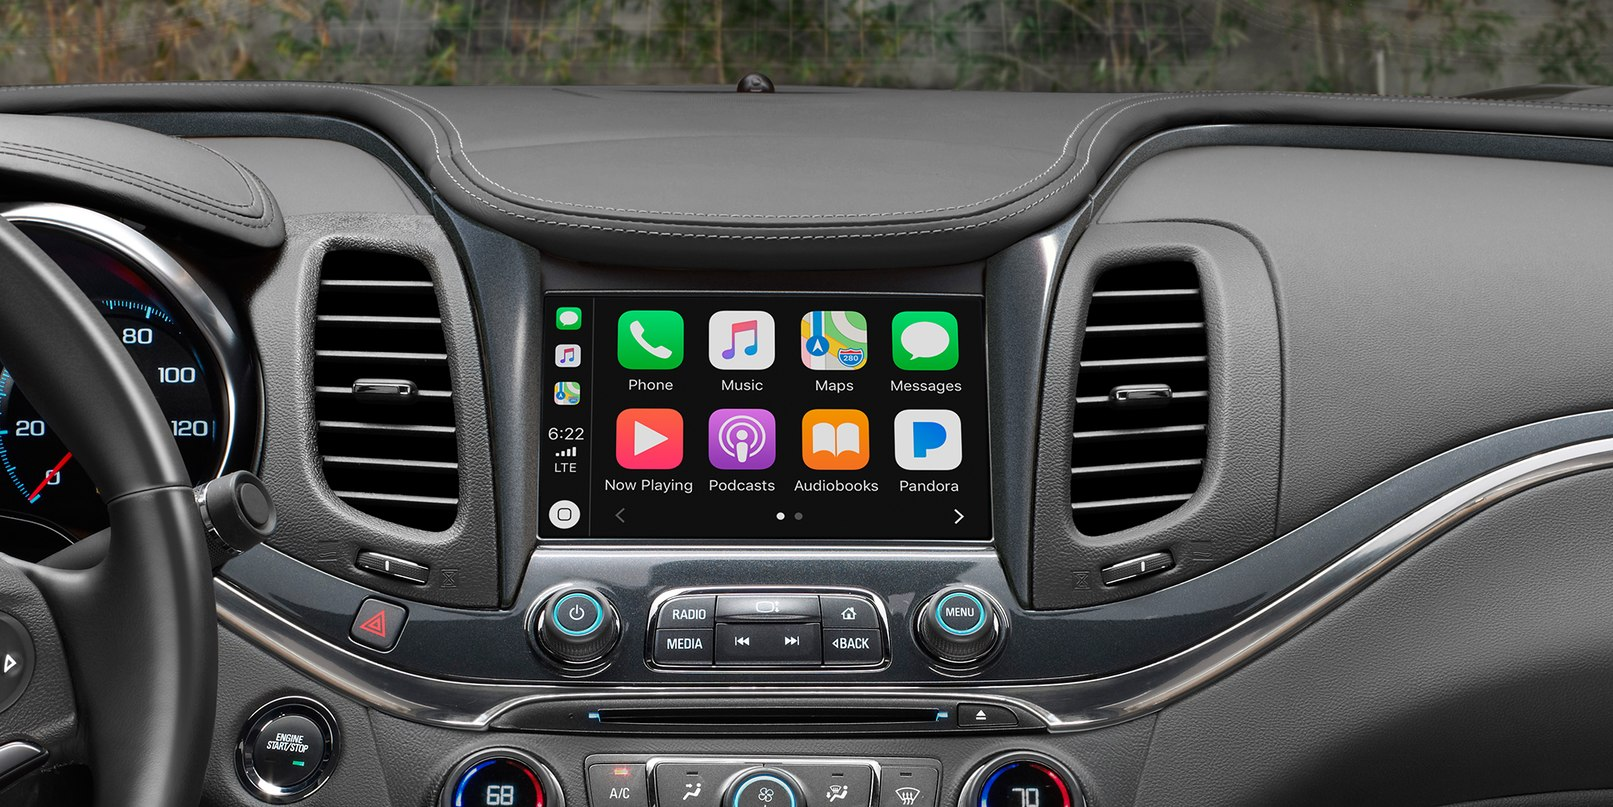 Apple CarPlay in the Chevrolet Impala